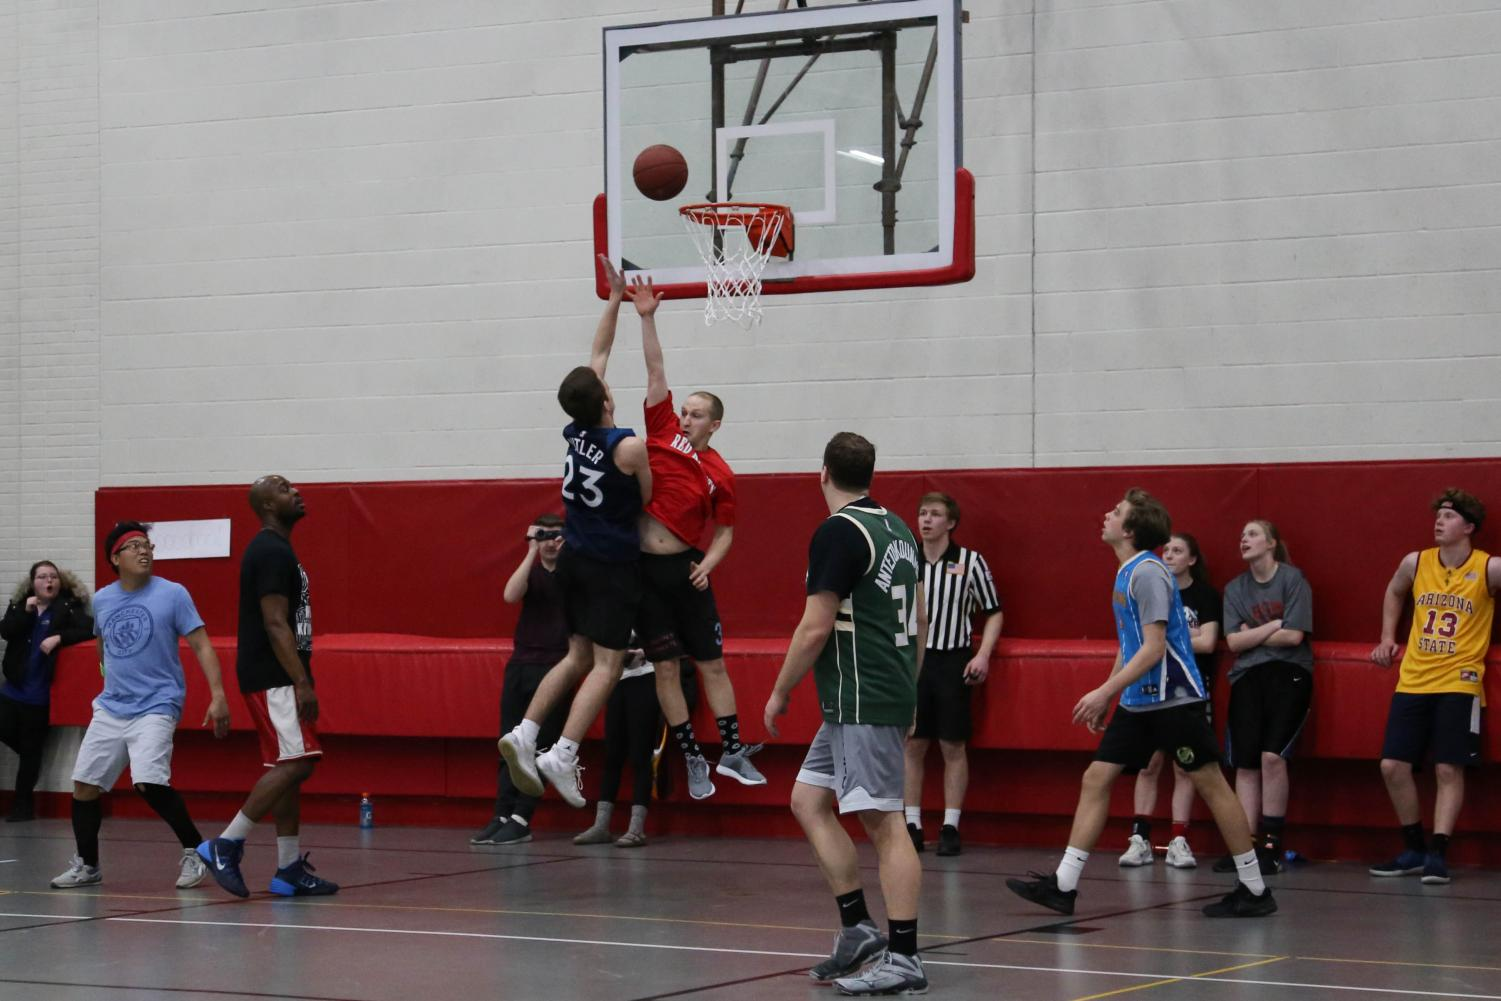 Each year, BSM's week of March Madness celebration culminates in a student vs. faculty basketball game. Last year, the students took the win, but––with talent on both sides this year––either side could win.